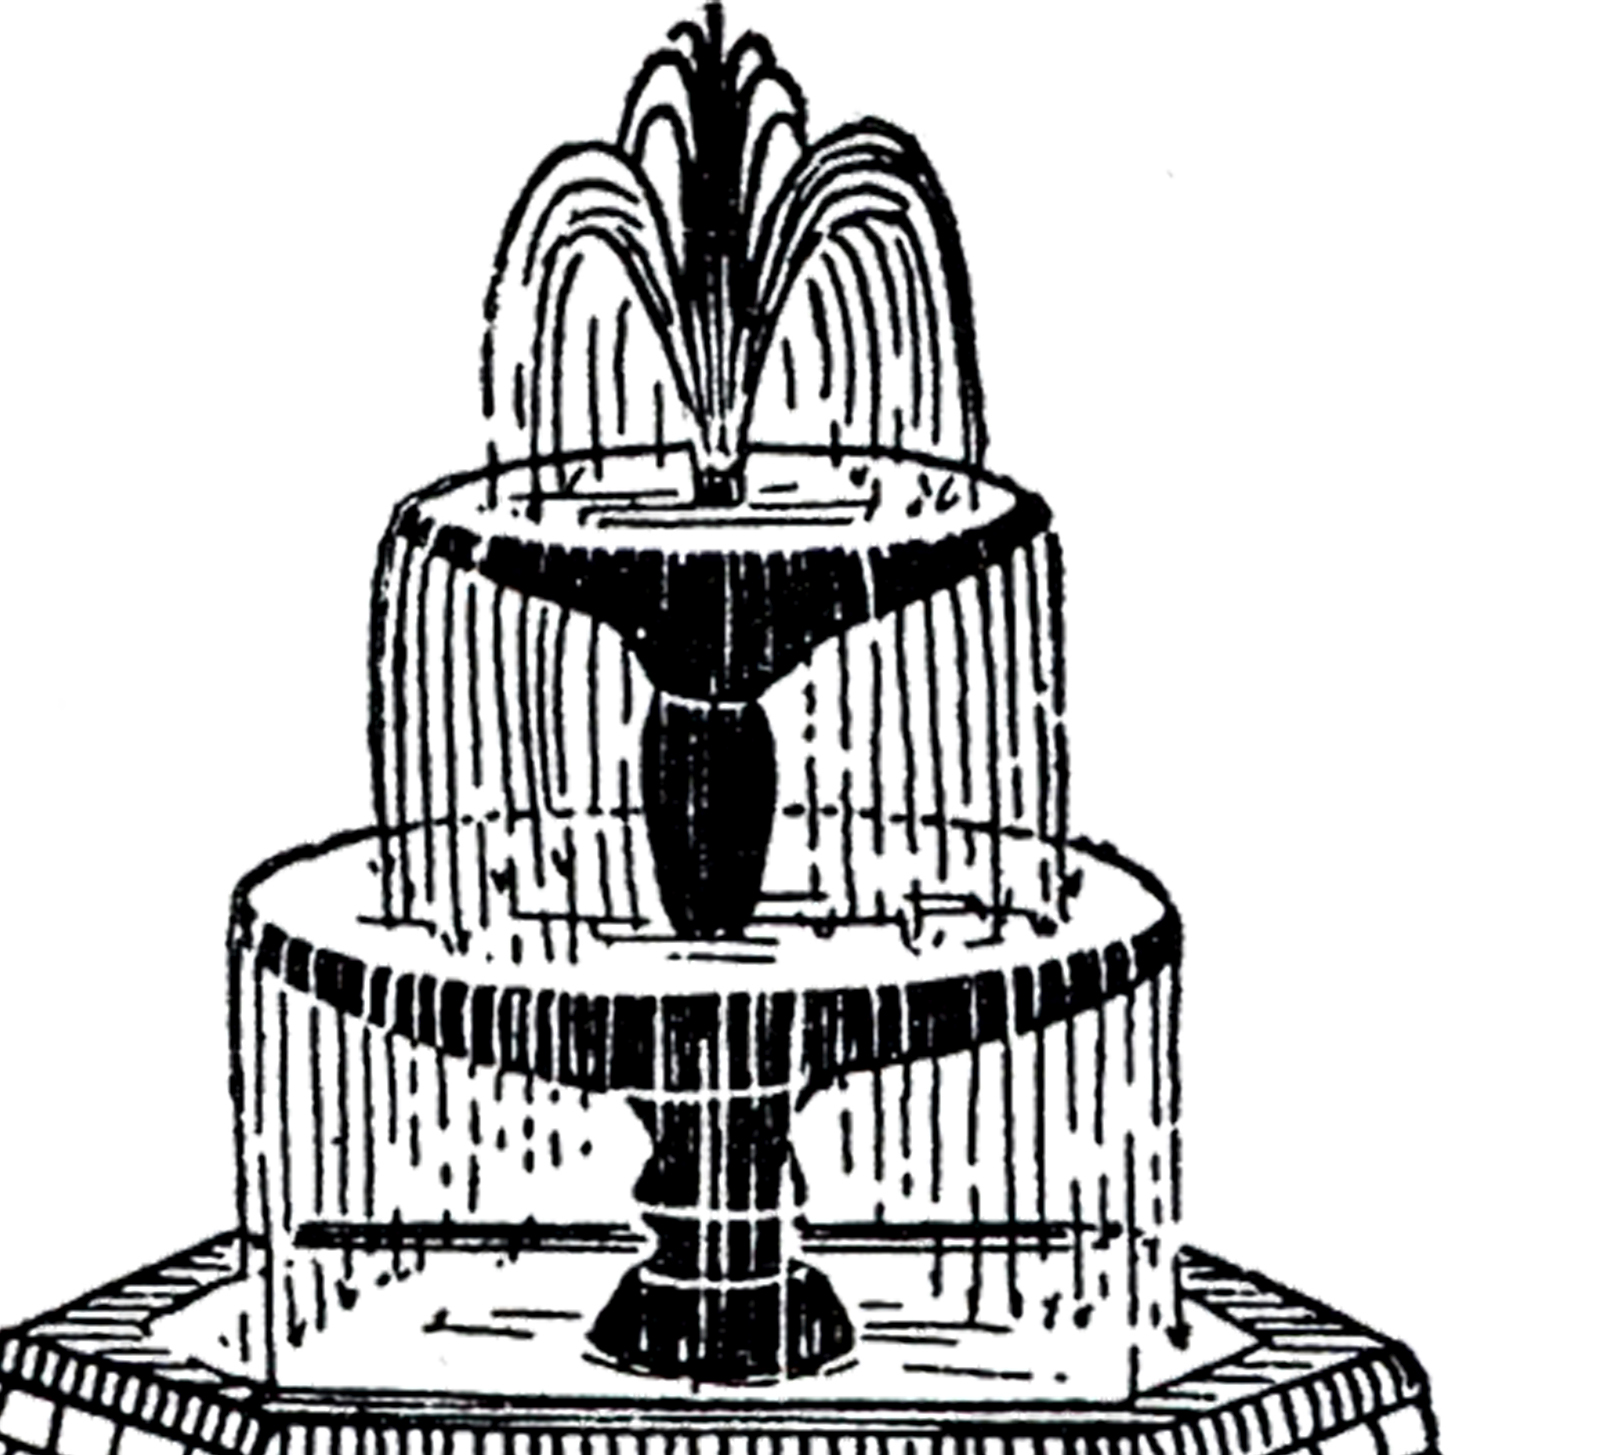 Three tiered fountain clipart jpg royalty free stock Free Vintage Fountain Clip Art! - The Graphics Fairy jpg royalty free stock